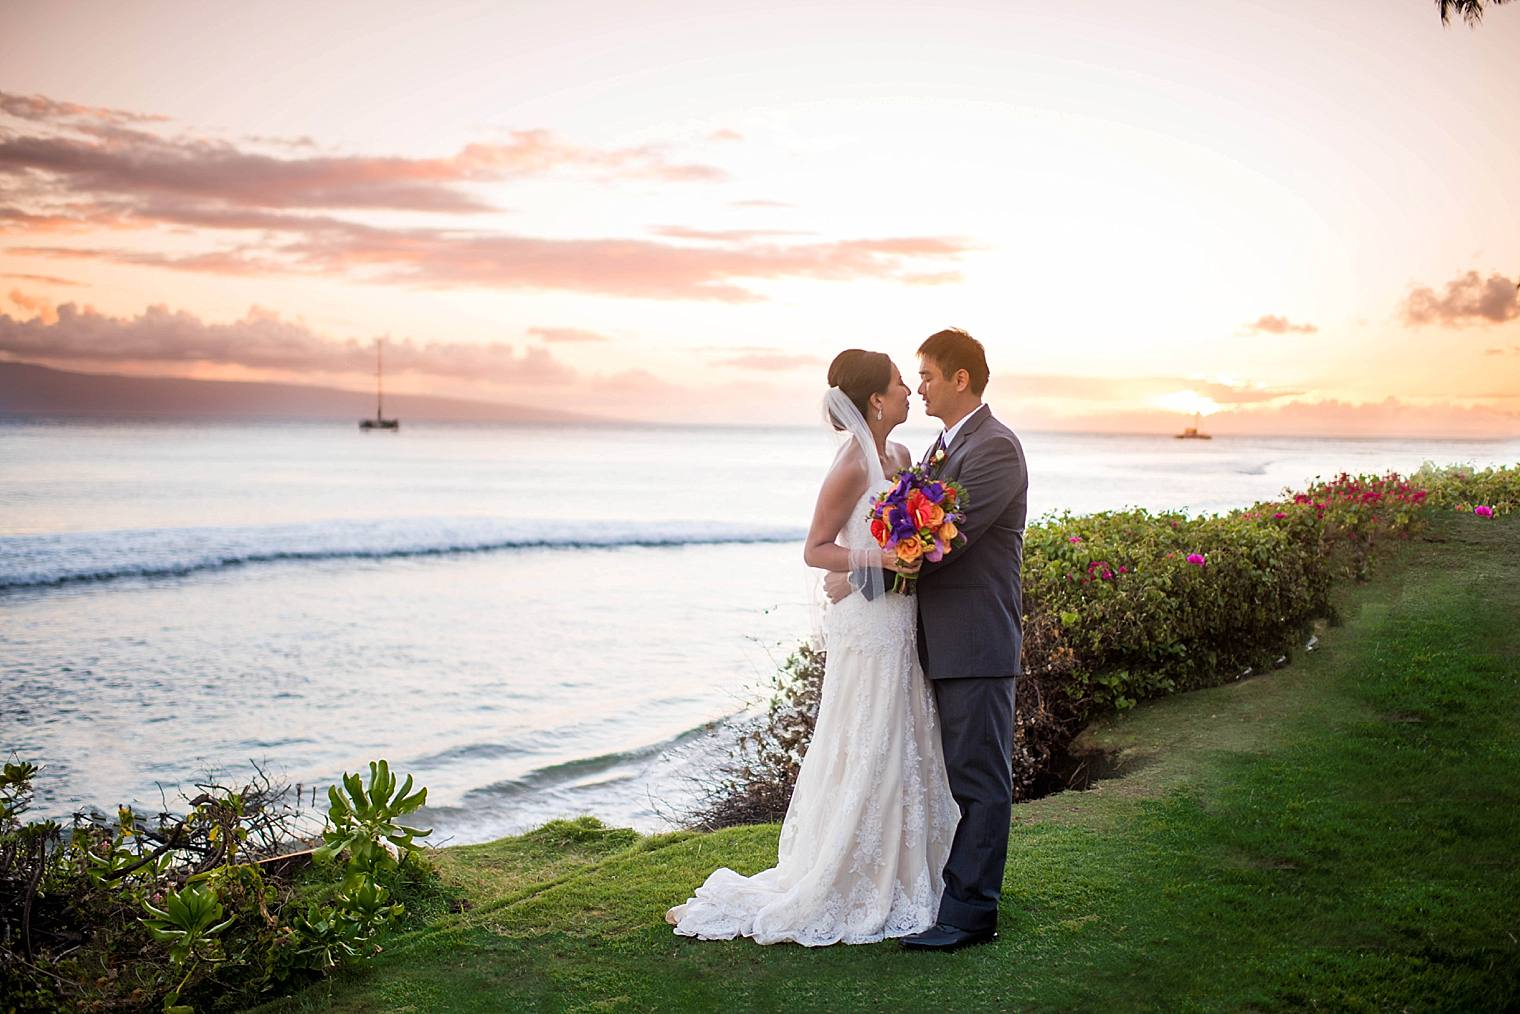 Hyatt Regency Maui Wedding Jaime And Courtney